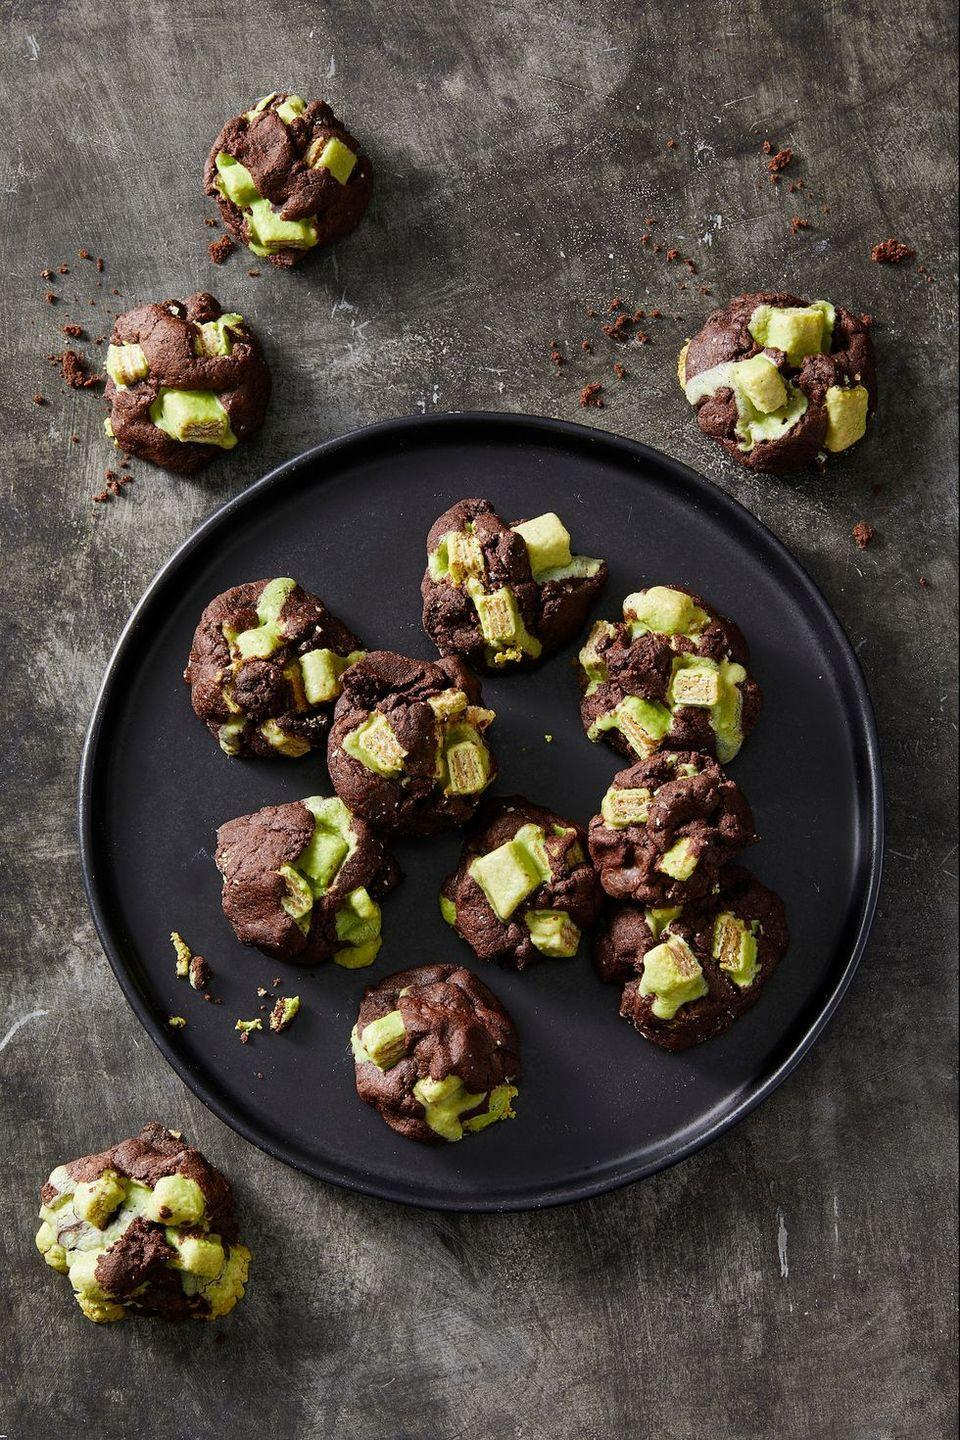 """<p>Cracked pieces of matcha tea KitKats (yes, they exist!) are hiding among chocolate chunks in these delicious dark chocolate cookies.</p><p><em><a href=""""https://www.goodhousekeeping.com/food-recipes/a28541666/dark-chocolate-candy-cookies-recipe/"""" rel=""""nofollow noopener"""" target=""""_blank"""" data-ylk=""""slk:Get the recipe for Dark Chocolate Candy Cookies »"""" class=""""link rapid-noclick-resp"""">Get the recipe for Dark Chocolate Candy Cookies »</a></em></p>"""